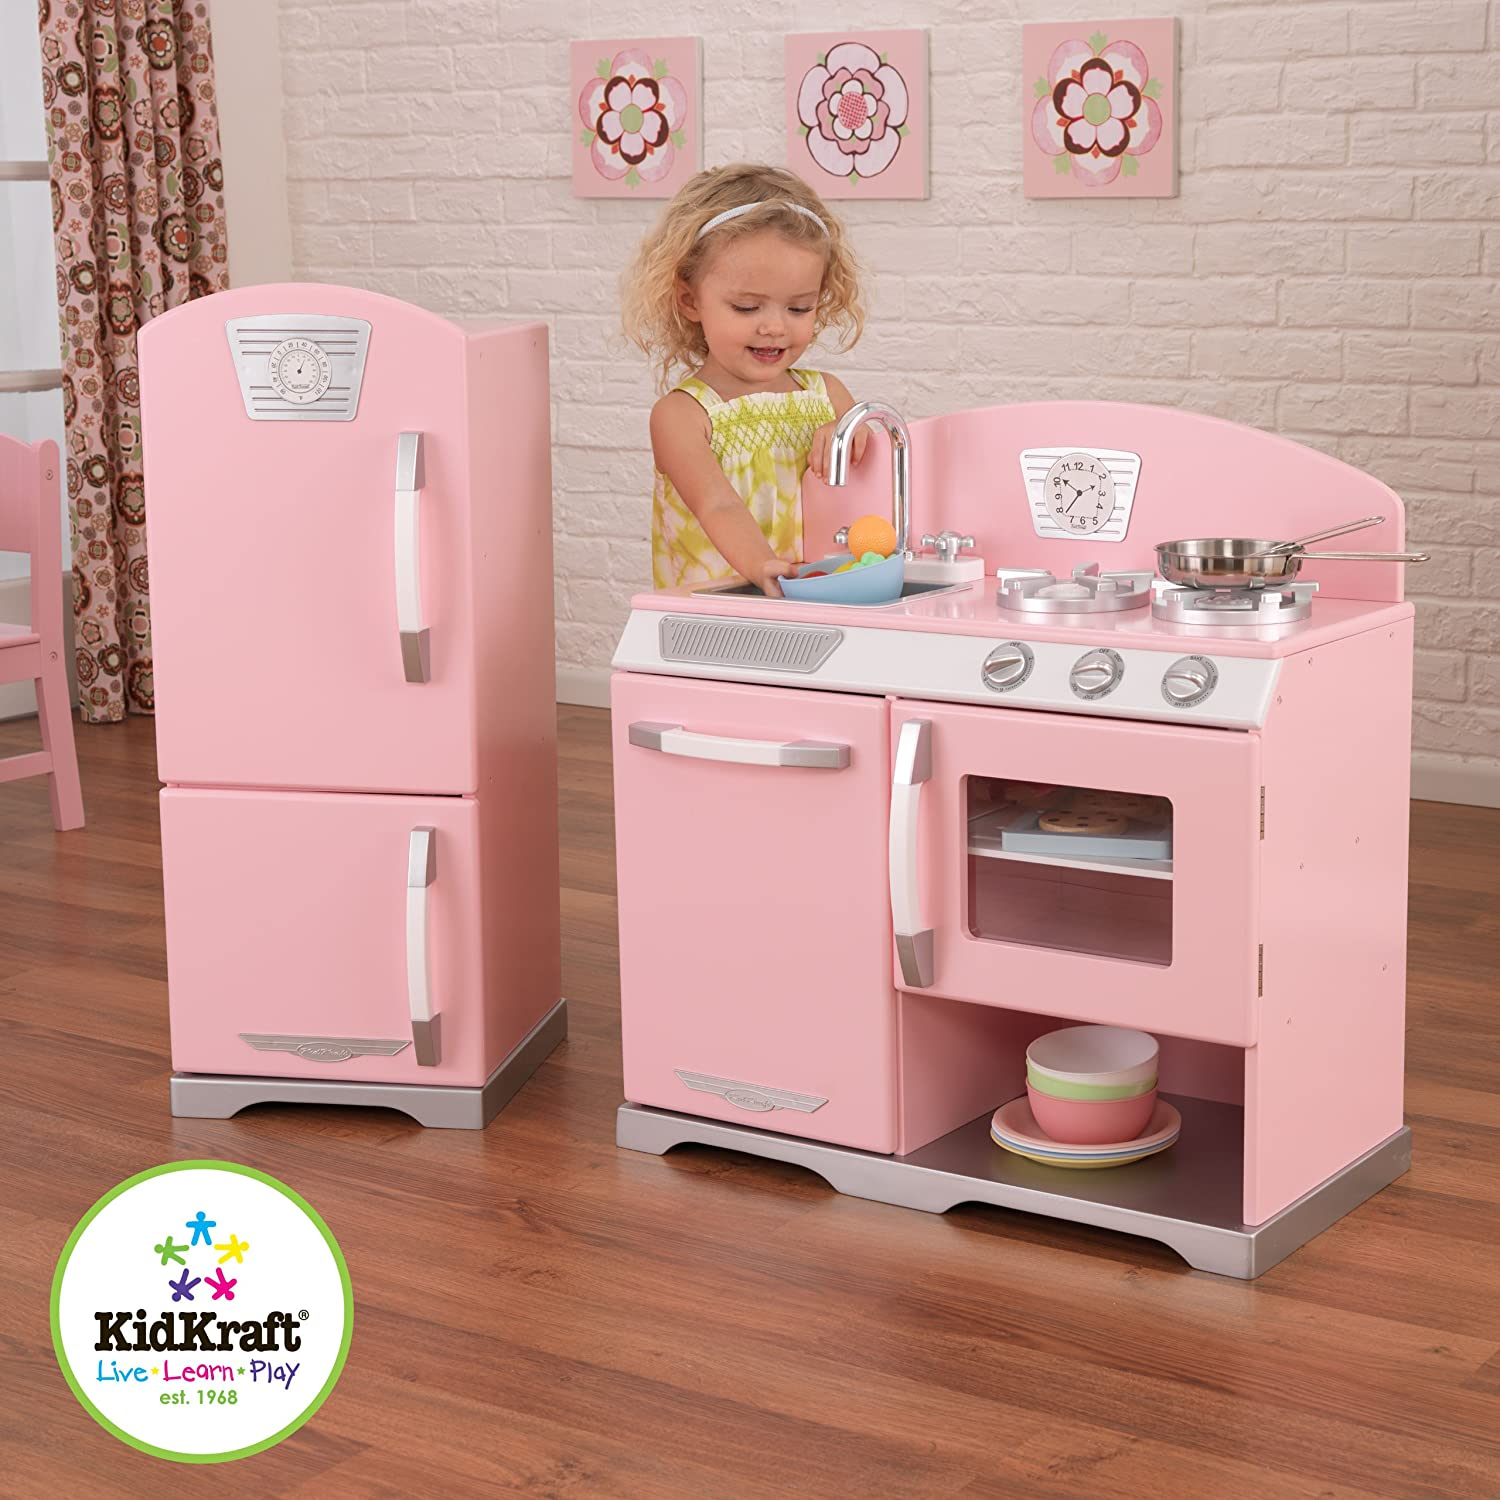 superb Kidkraft Pink Retro Kitchen And Refrigerator Play Set Part - 3: Amazon.com: Kidkraft Retro Kitchen and Refrigerator in Pink: Toys u0026 Games